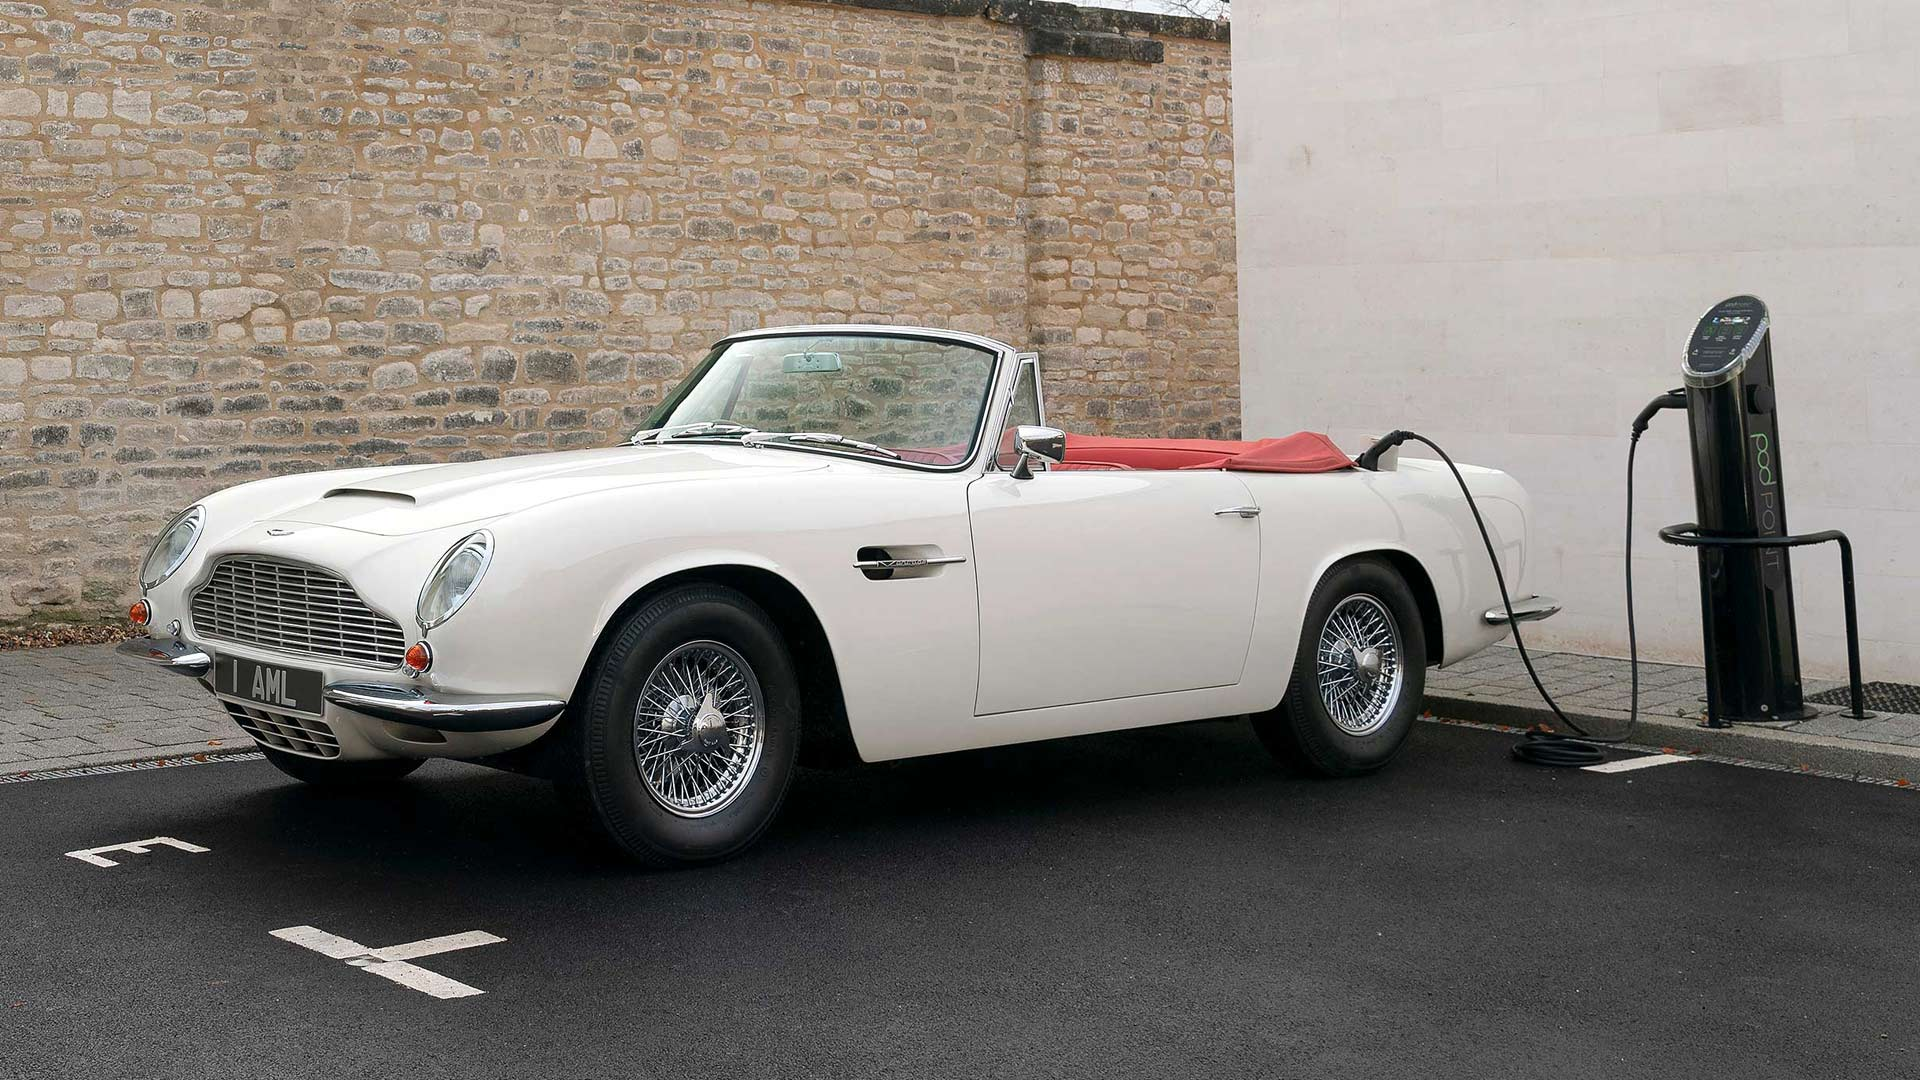 Aston Martin DB6 Electric Vehicle - MAT Foundry